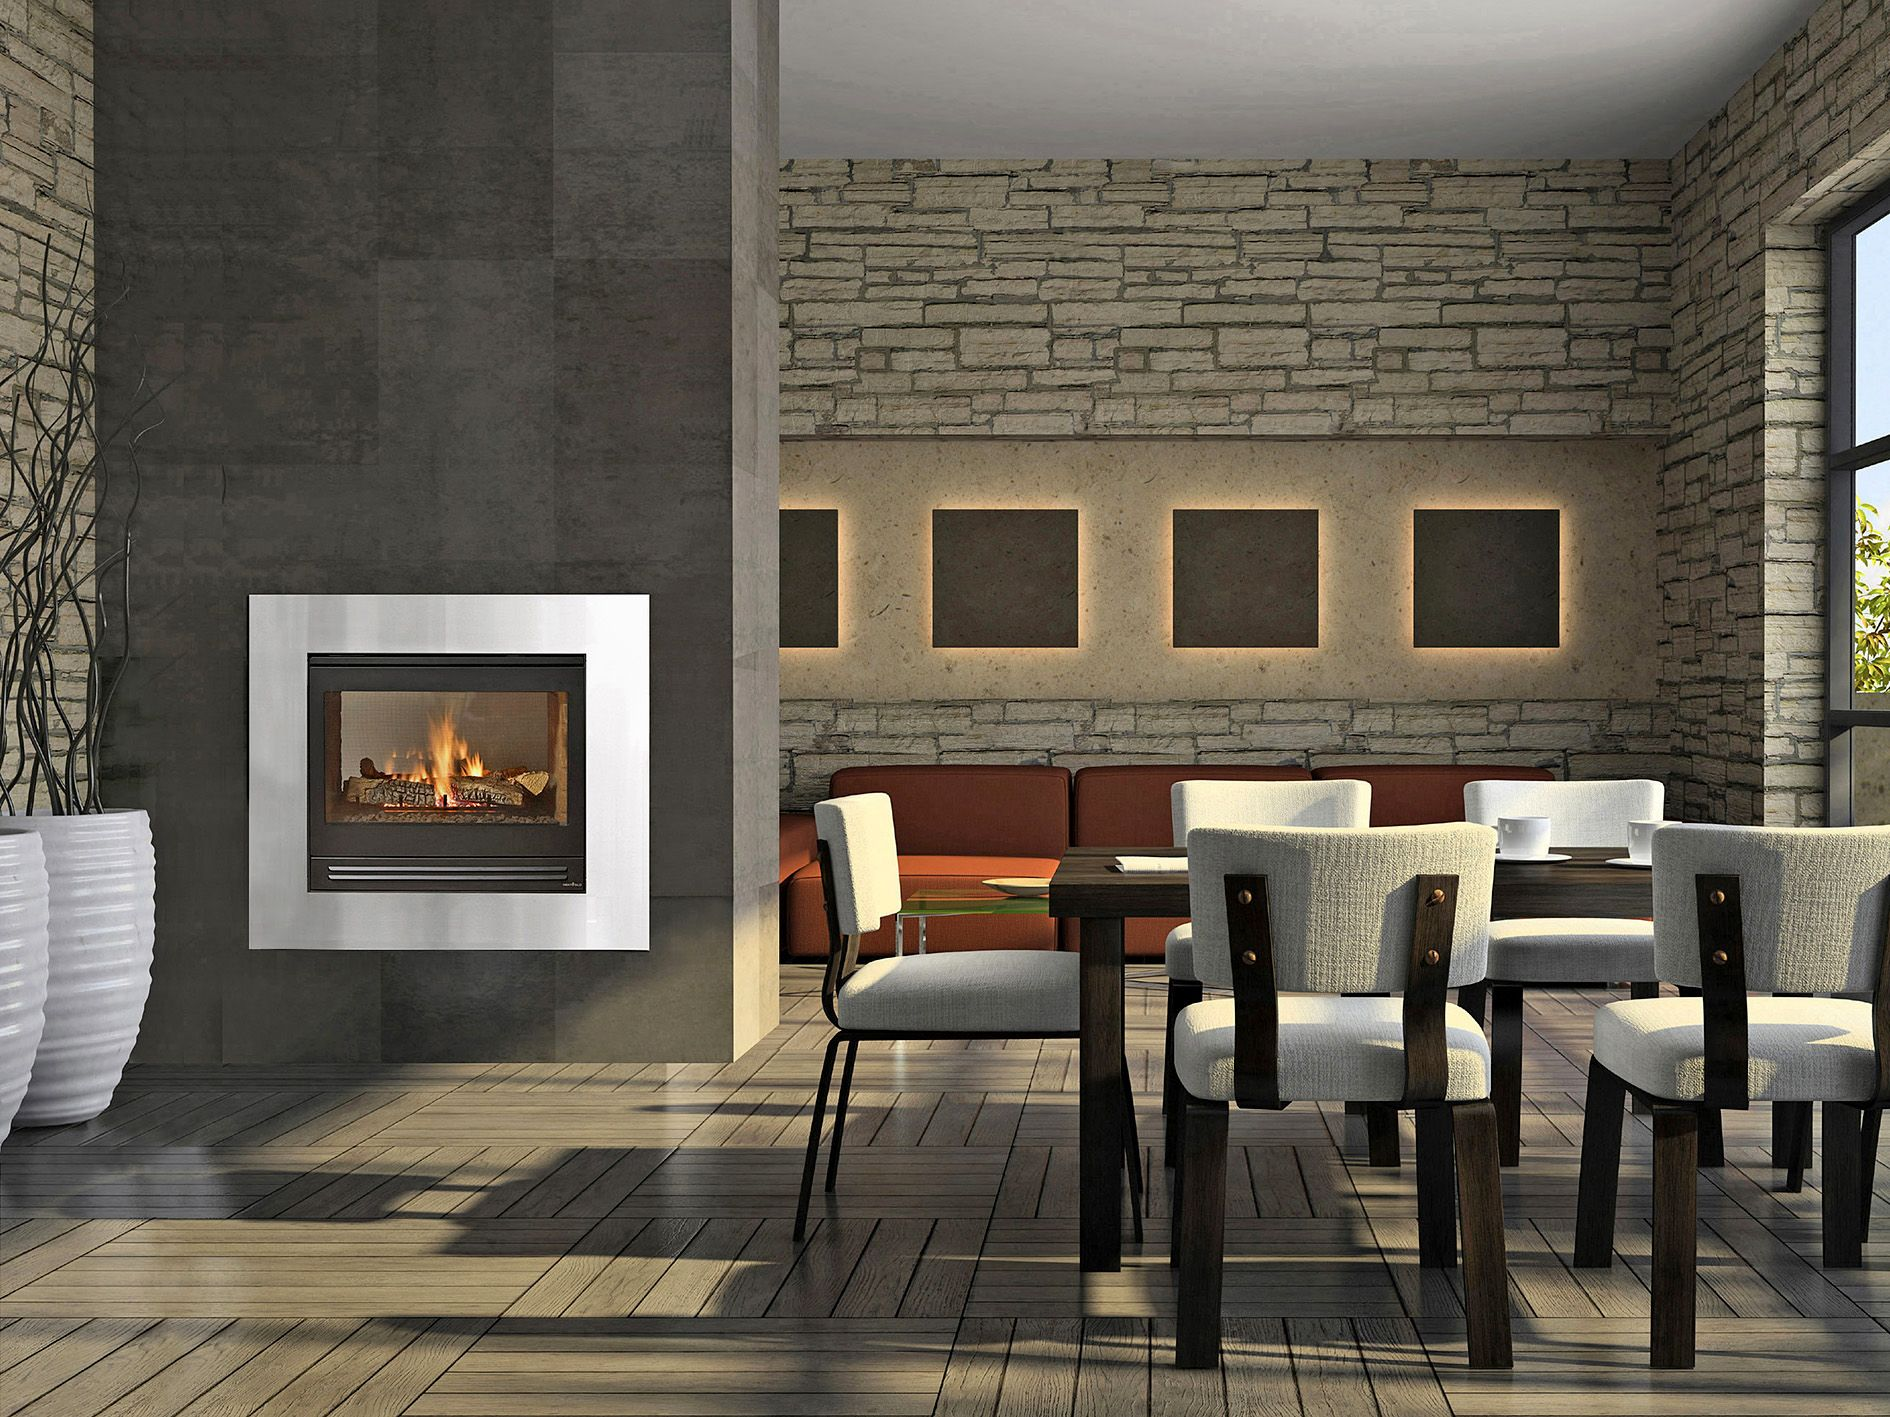 Efficiency of gas fireplace - Heat Glo St Hvbi The Efficient Double Sided Gas Fireplace Heats 2 Rooms